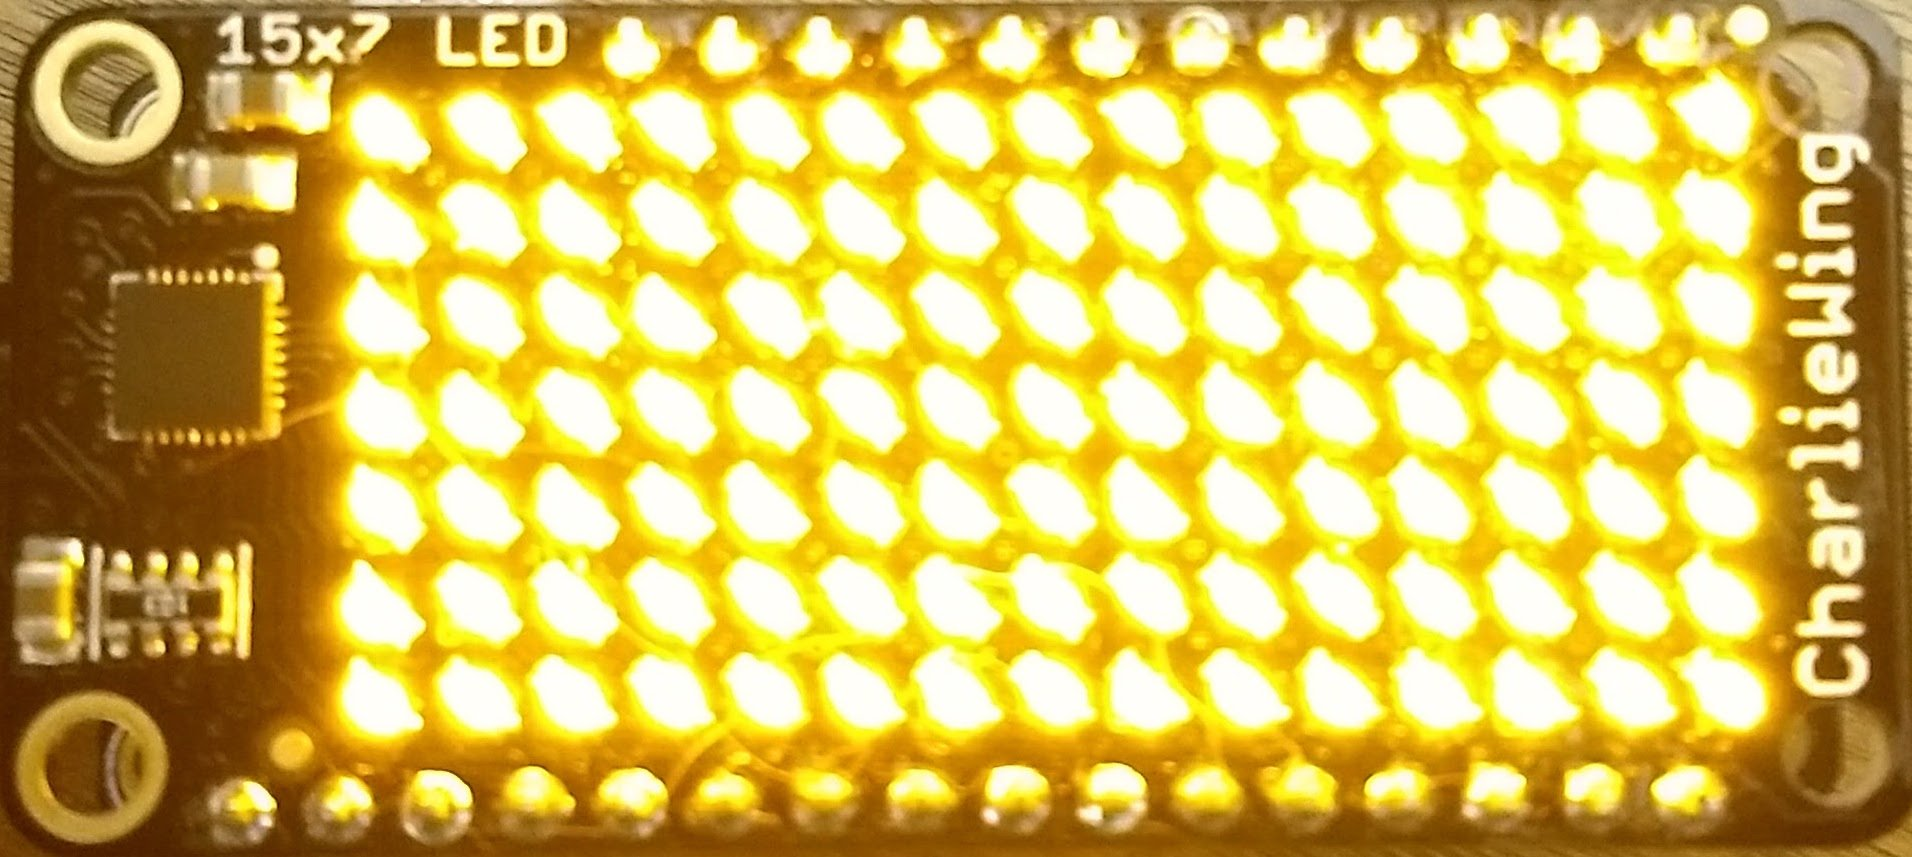 led_matrices_charlieplex_fill.jpg